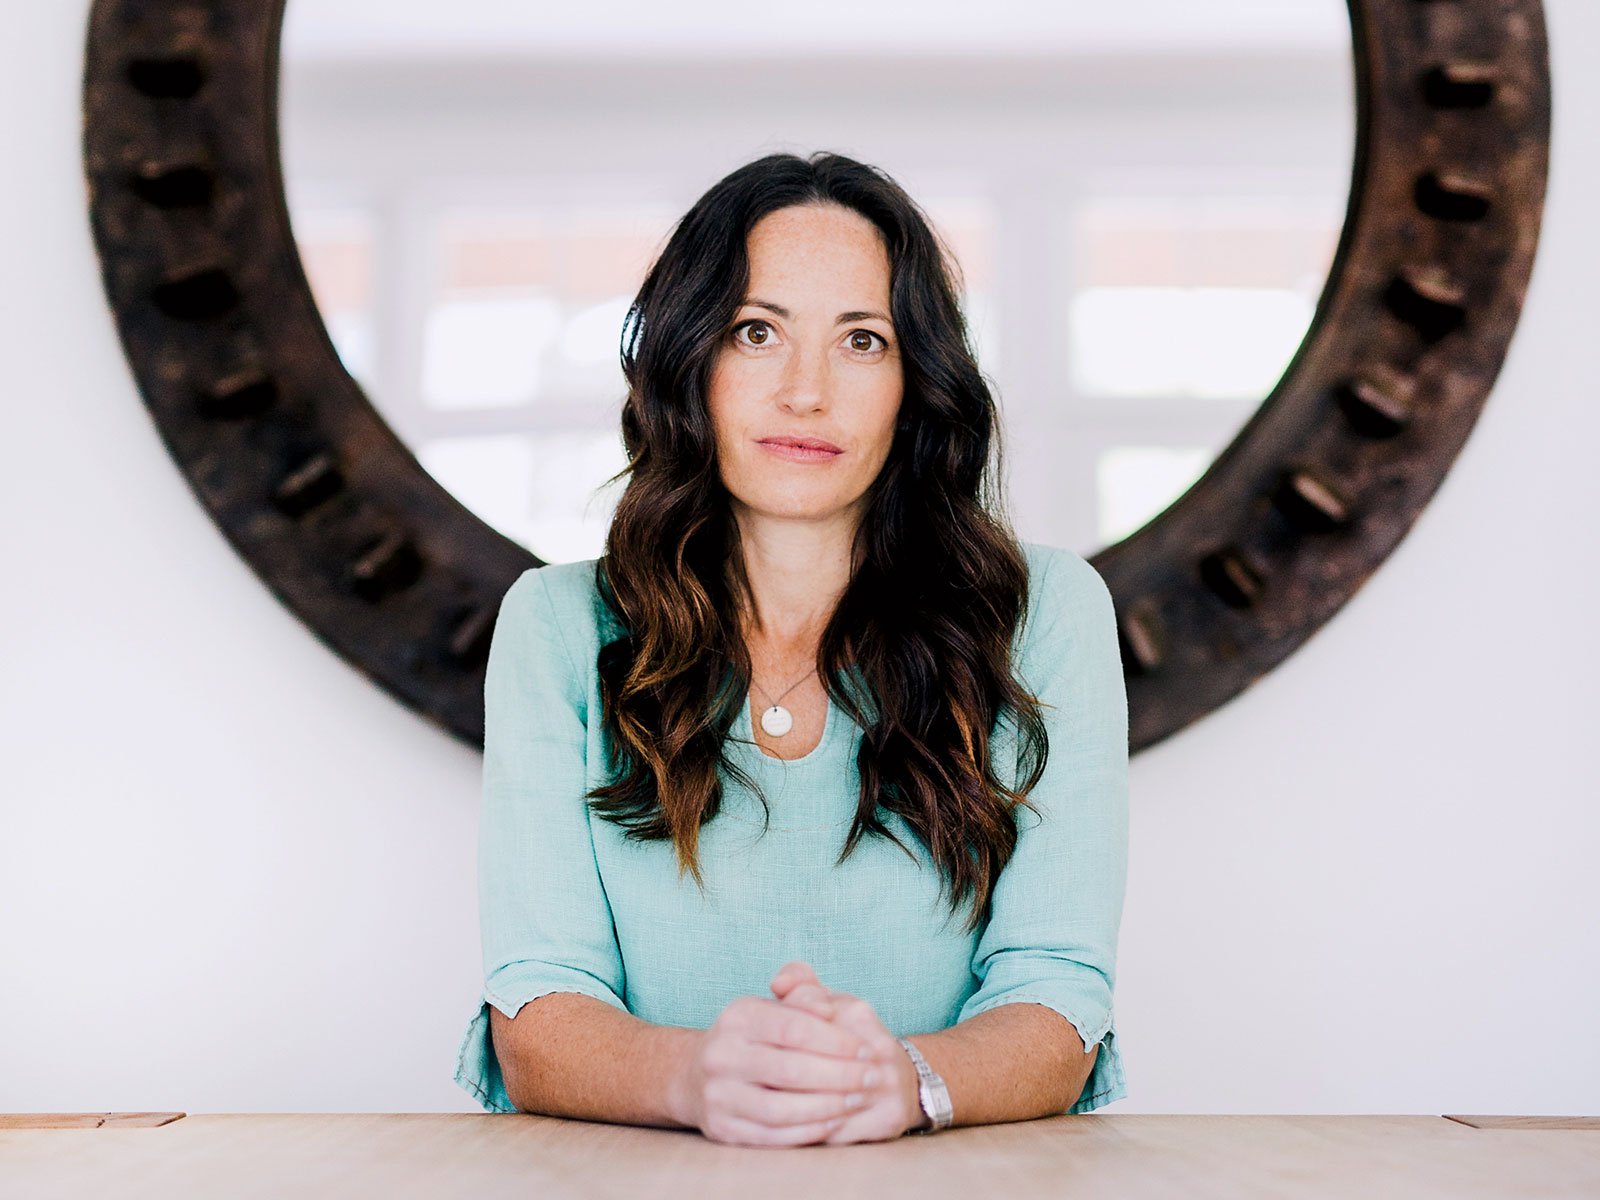 4. Nicole Bernard Dawes, Founder and CEO of Late July Snacks